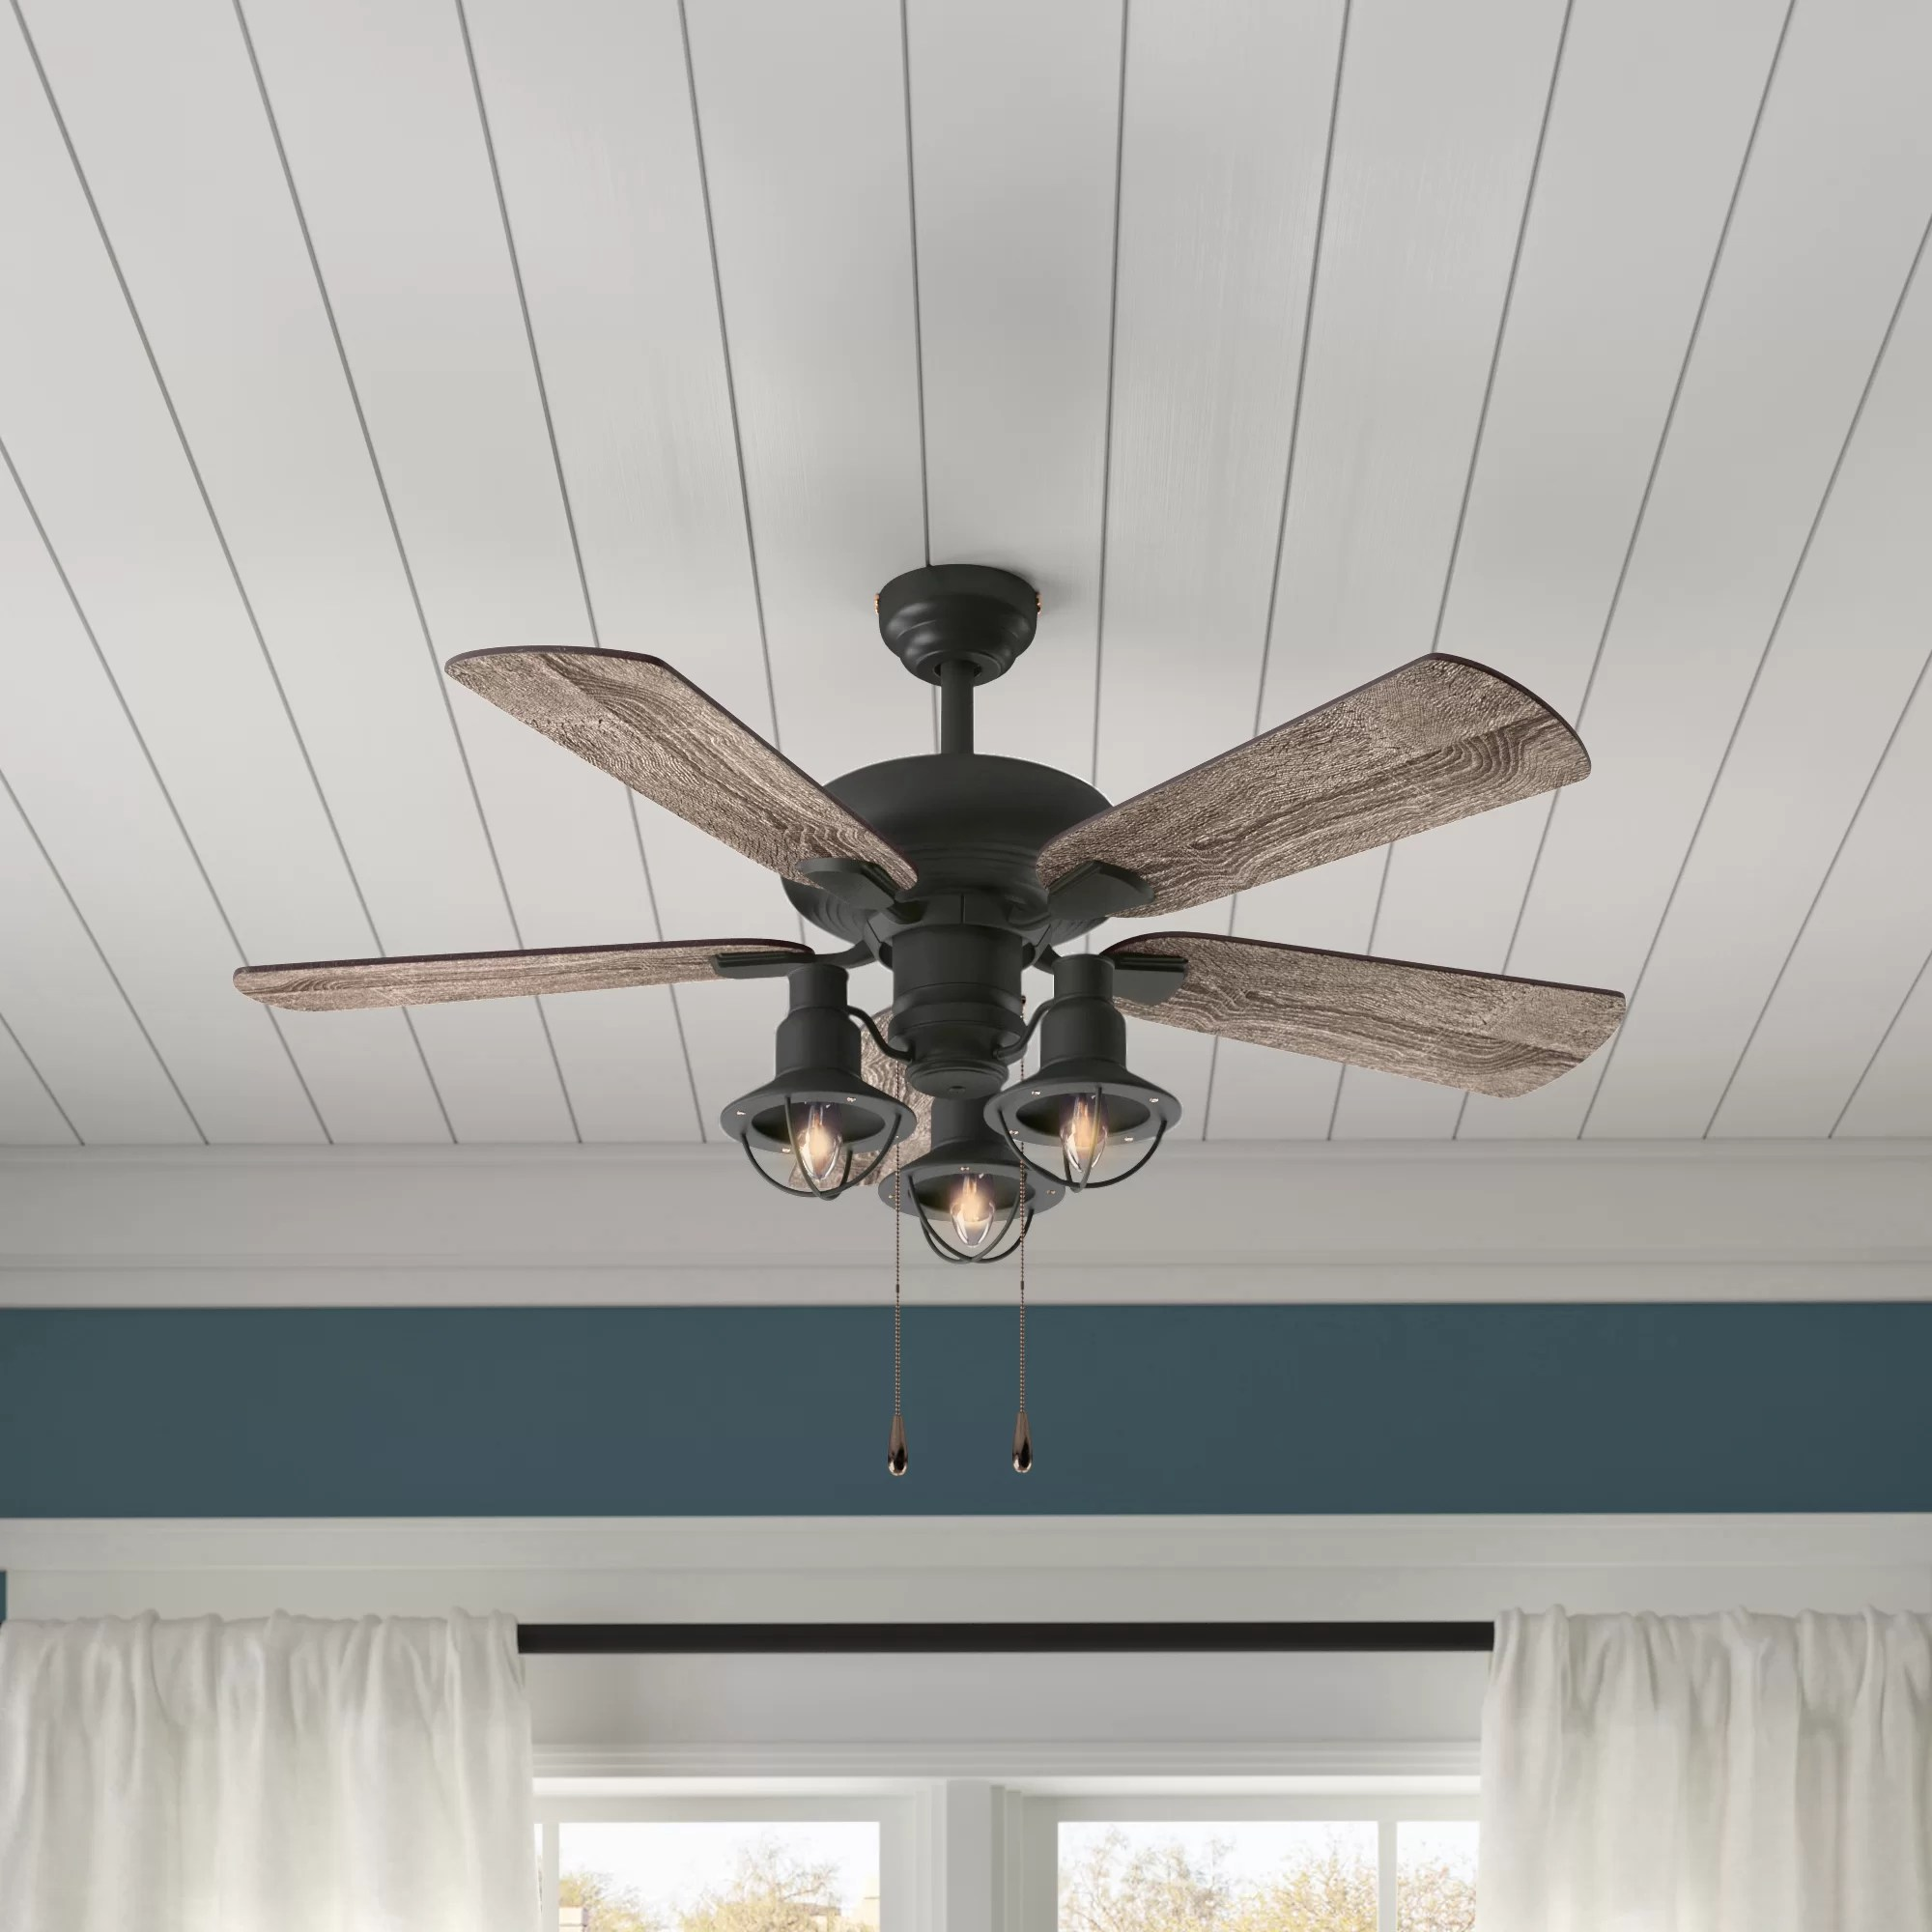 hight resolution of birch lane heritage 42 raymer 5 blade led ceiling fan light kit included reviews birch lane